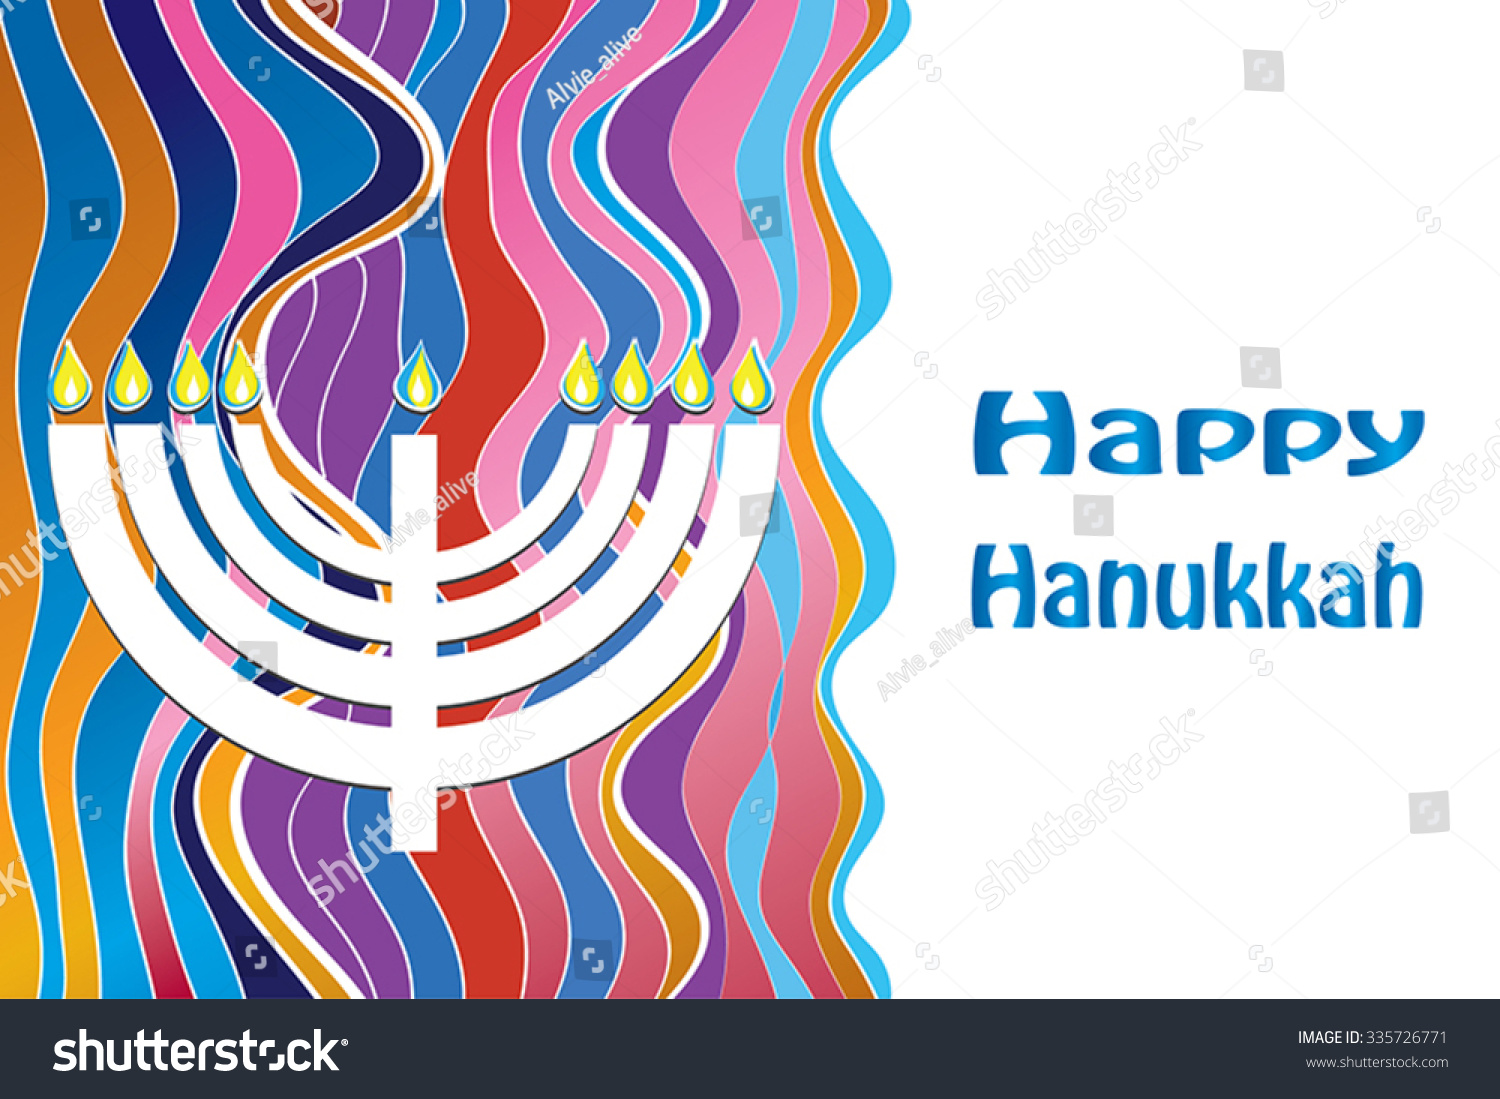 Happy hanukkah greeting card design hebrew stock vector 335726771 happy hanukkah greeting card design hebrew greeting text vector illustration jewish holiday with menorah m4hsunfo Image collections